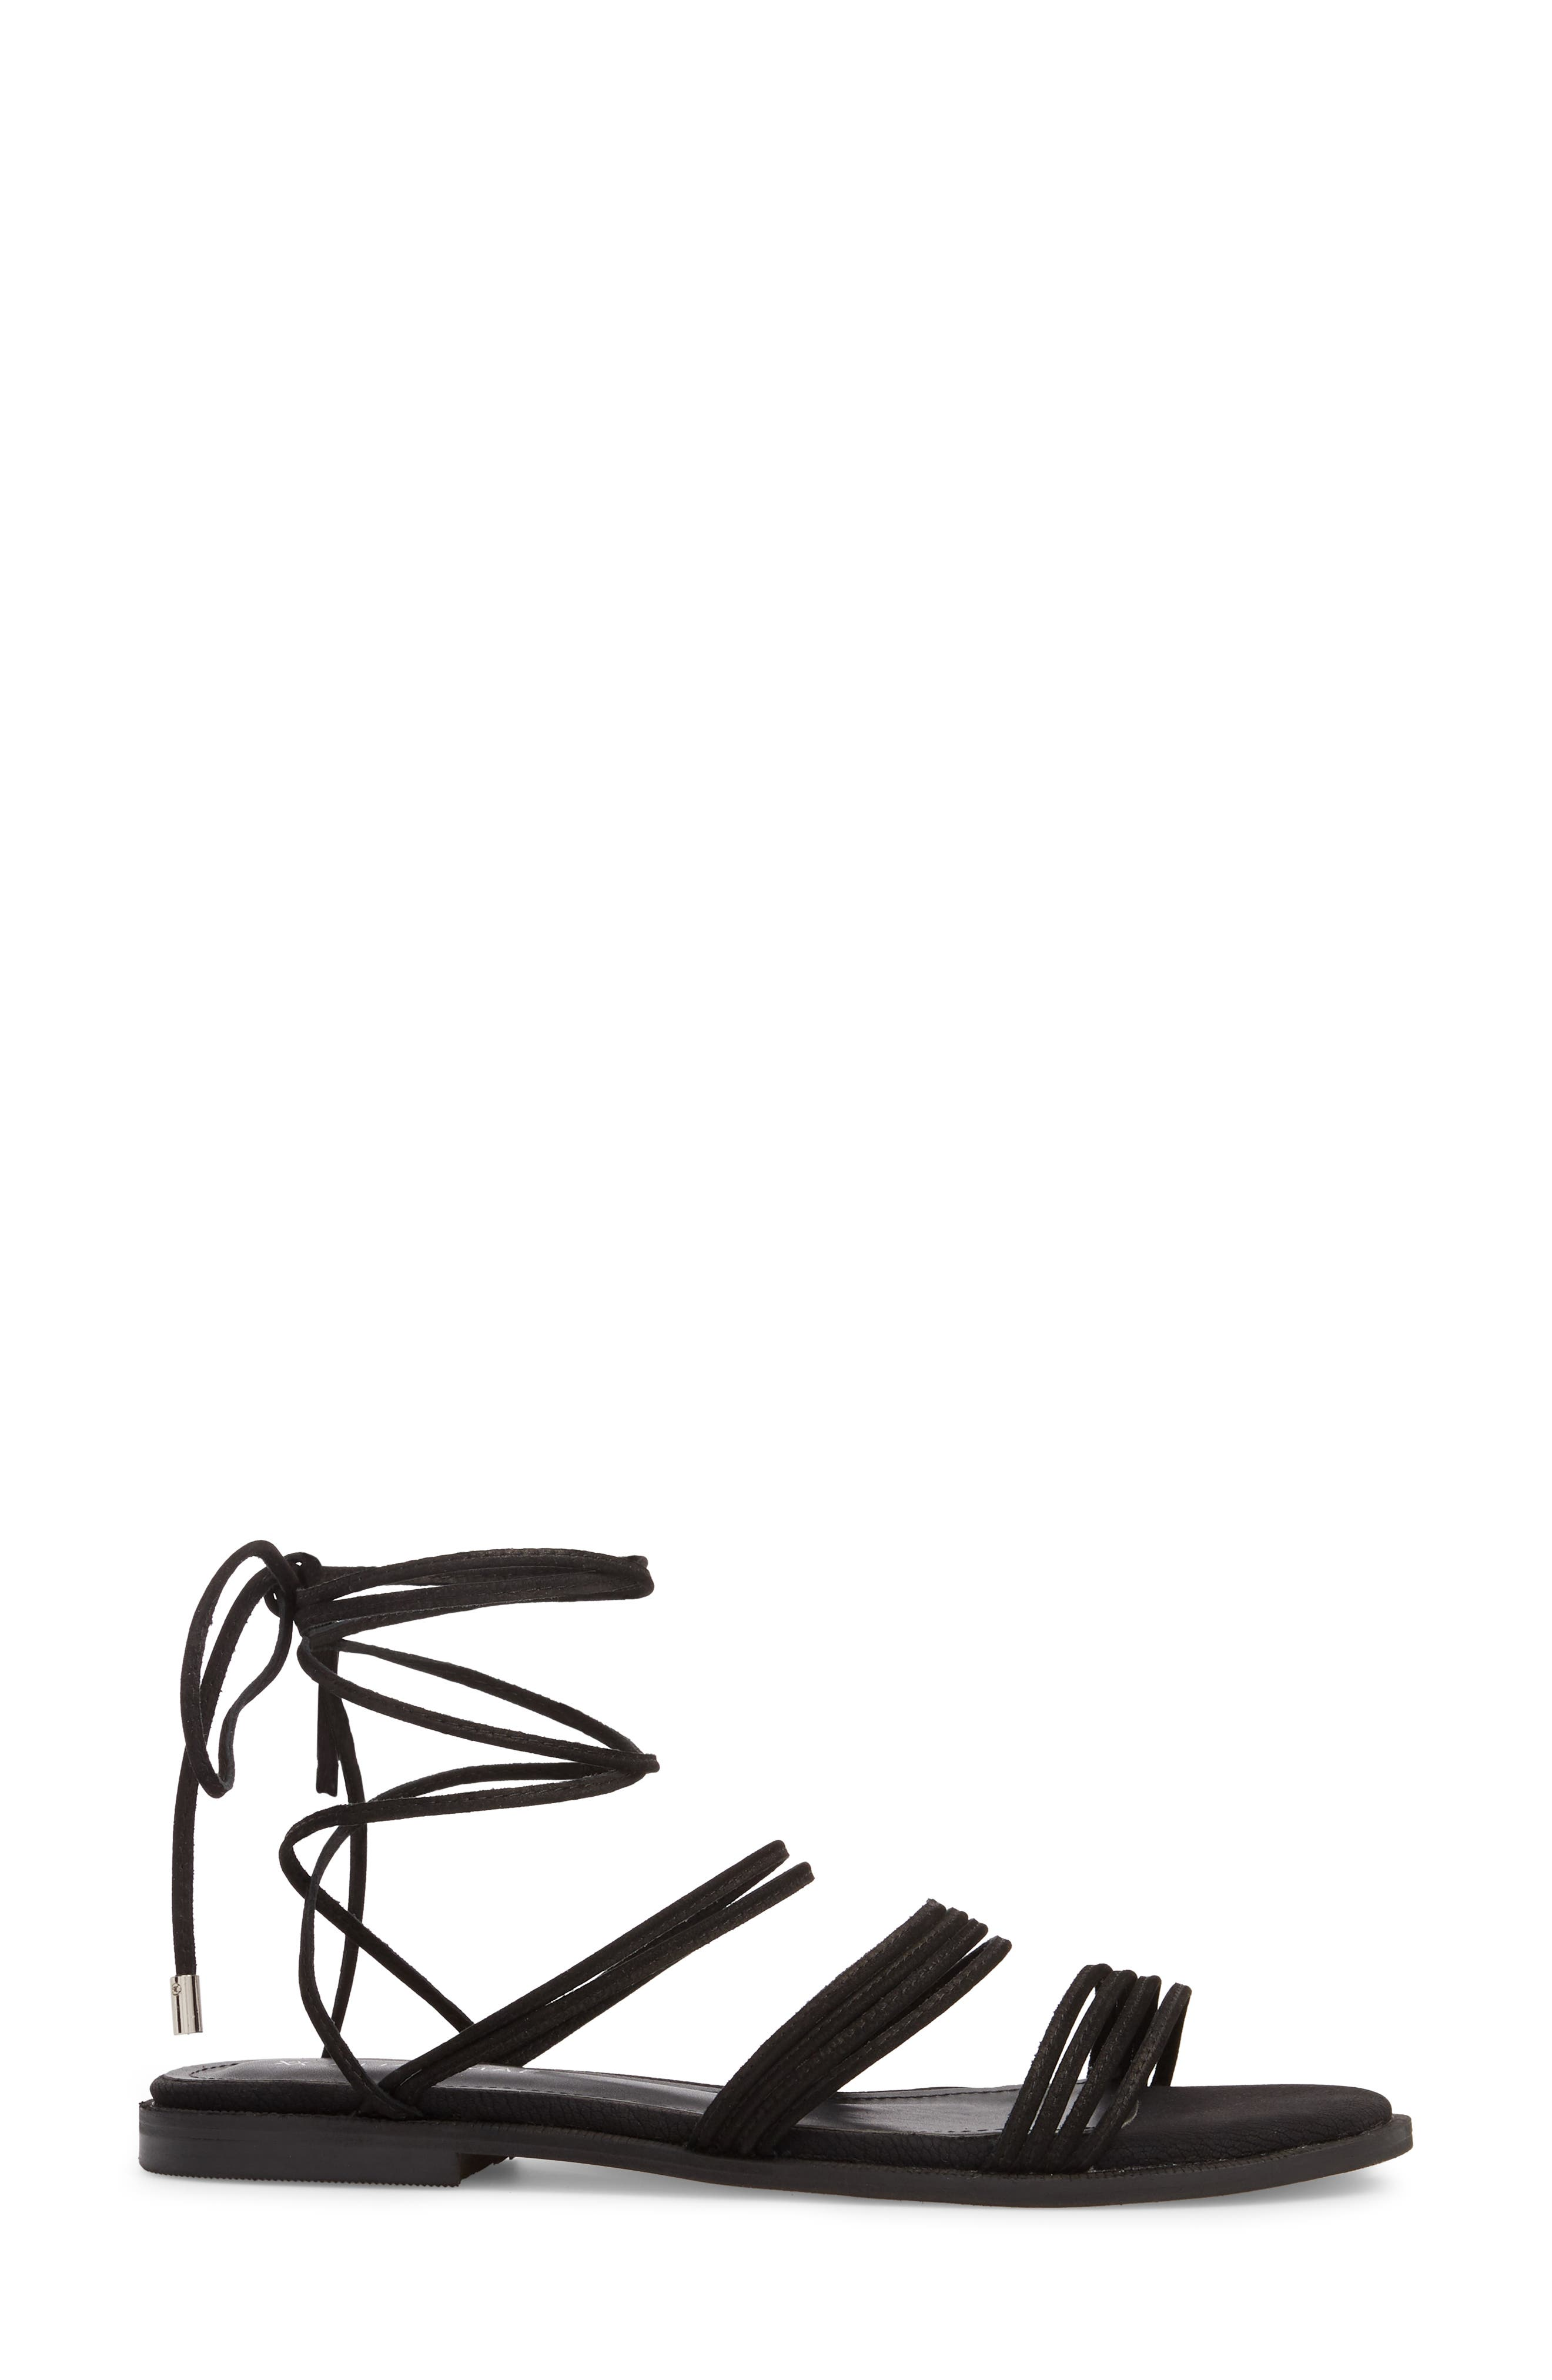 Theory Strappy Flat Sandal,                             Alternate thumbnail 7, color,